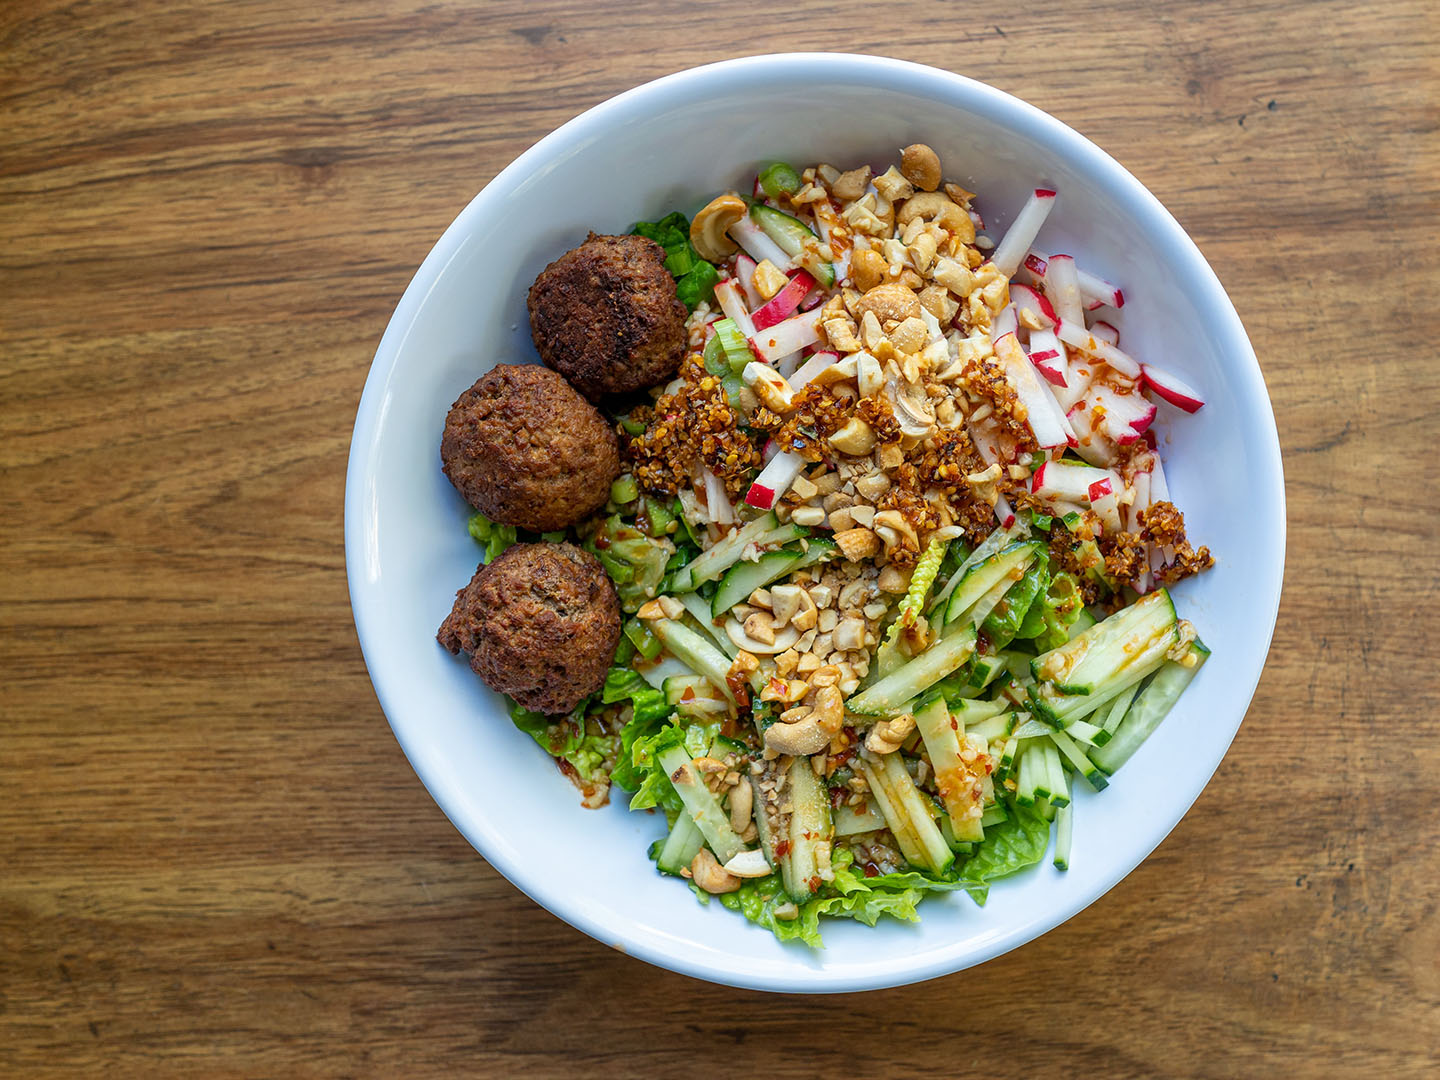 Plant-based Vietnamese salad with Impossible meatballs